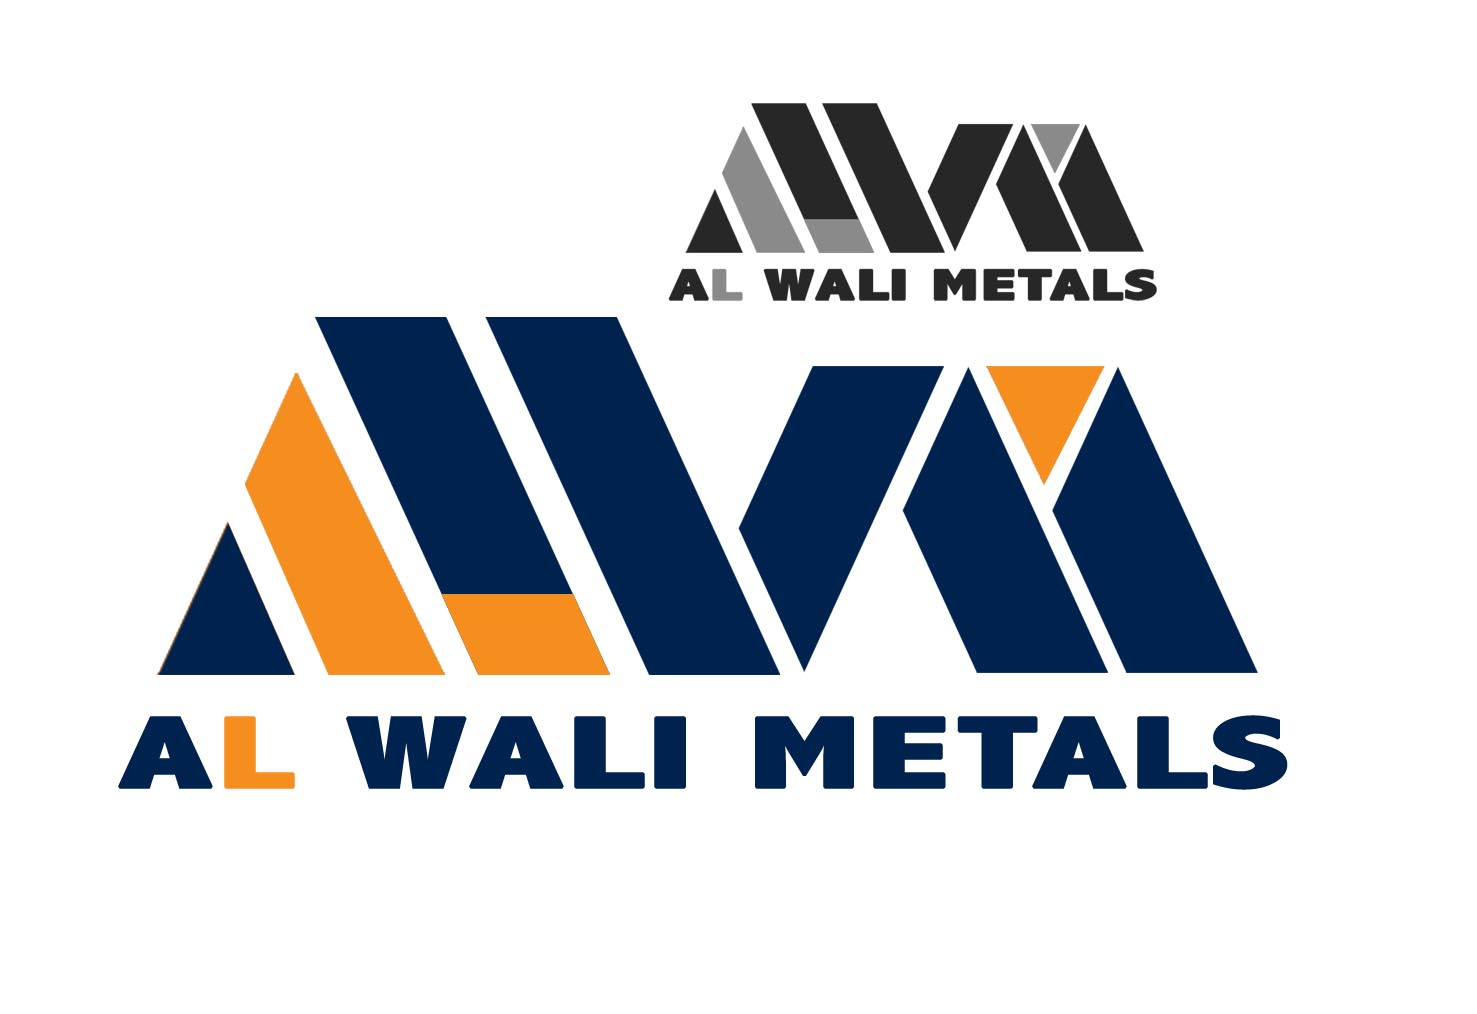 Logo Design by Cesar III Sotto - Entry No. 35 in the Logo Design Contest Inspiring Logo Design for Al Wali Metals.